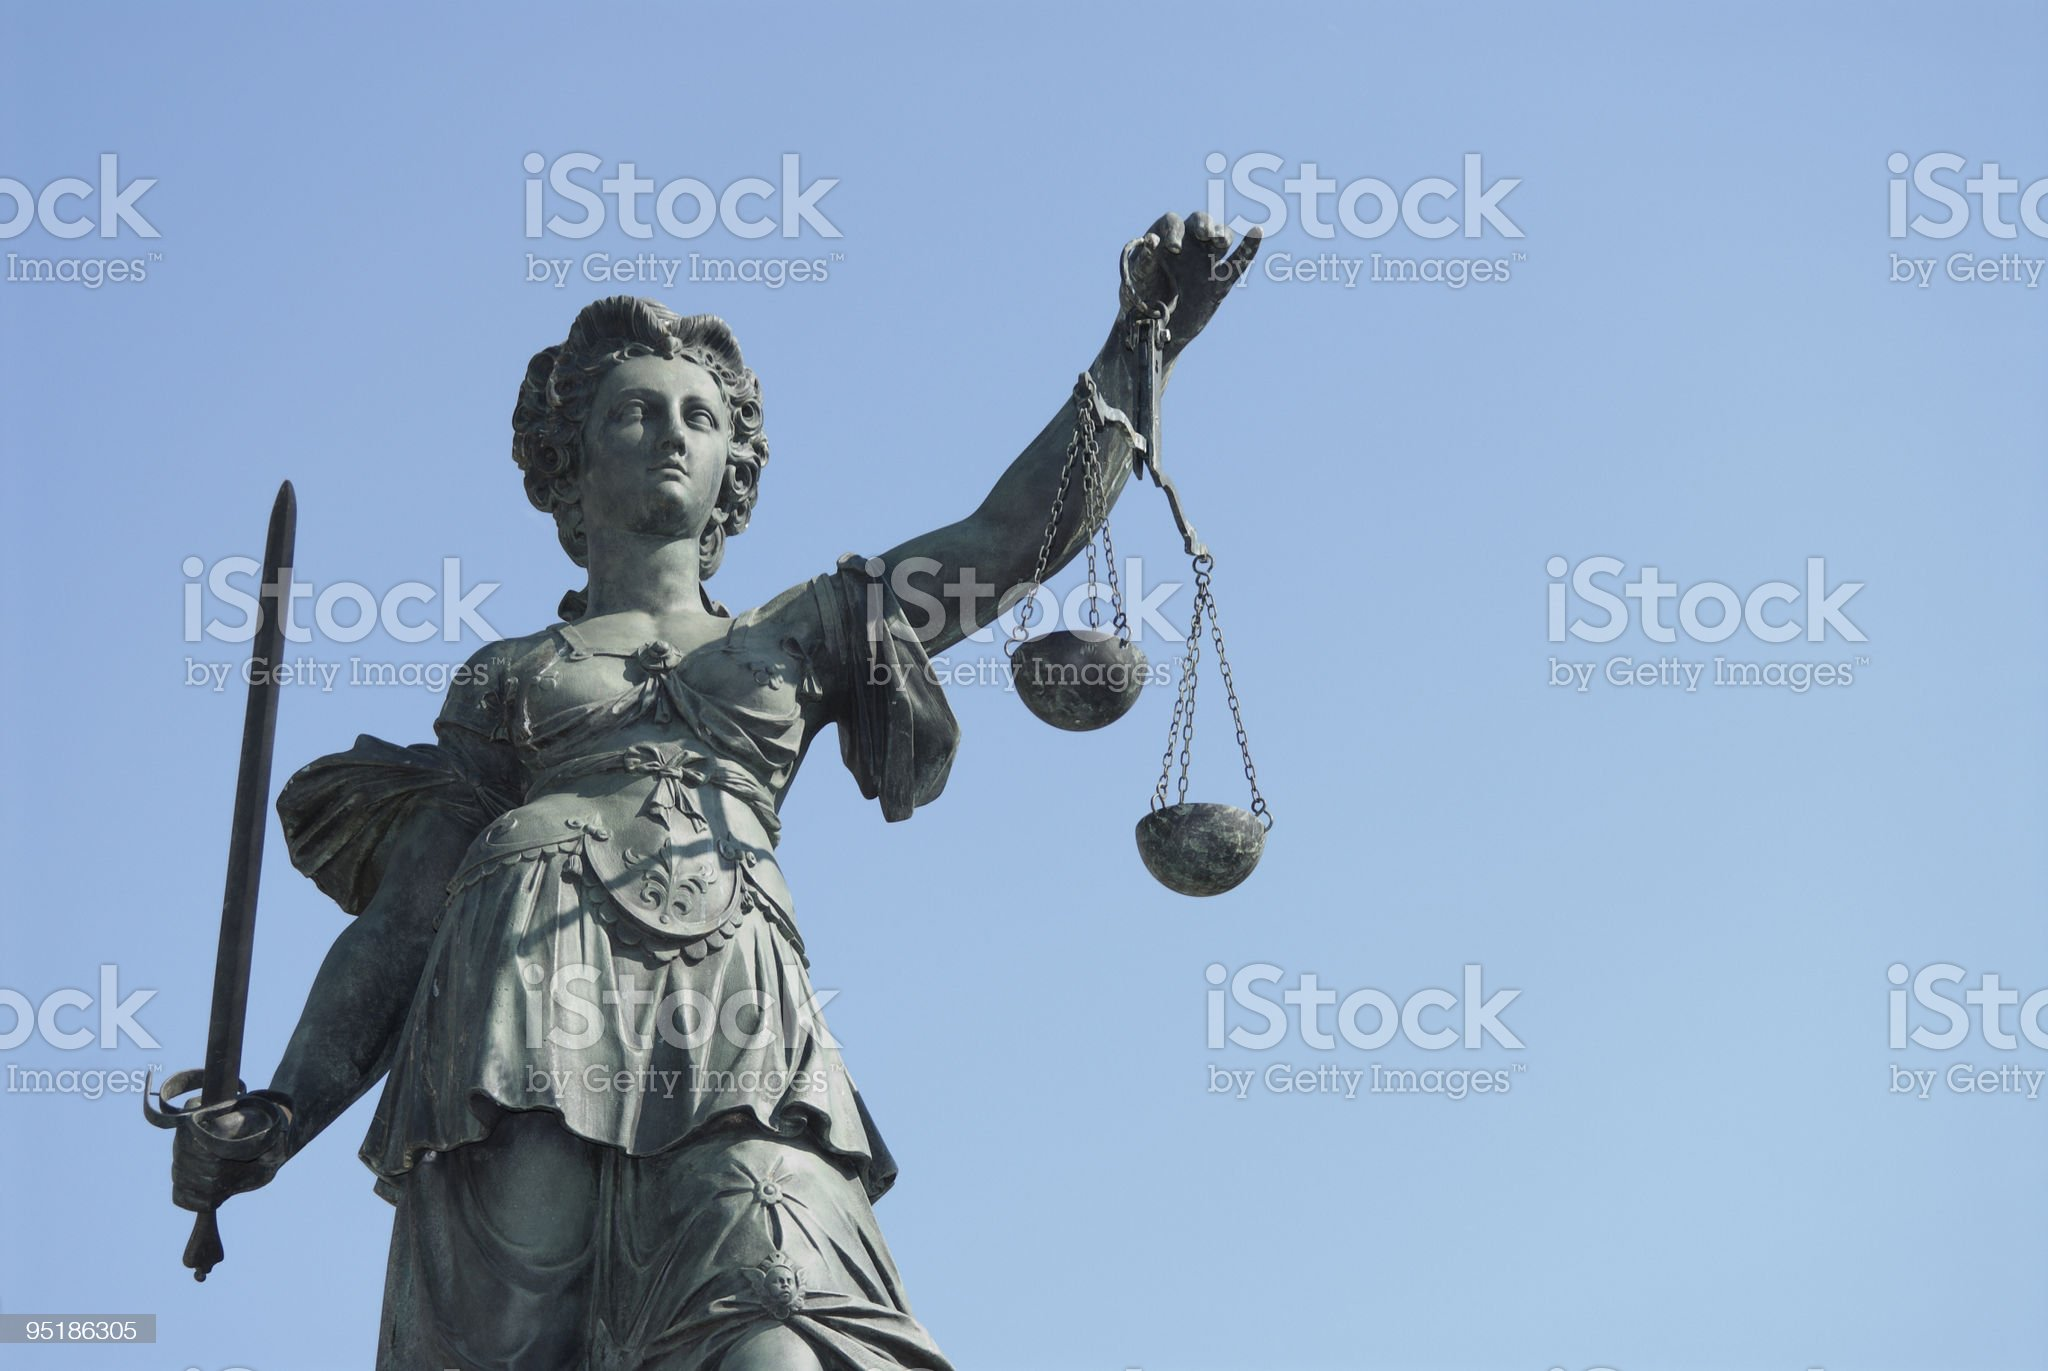 Upward perspective of Statue of Justice against the sky royalty-free stock photo